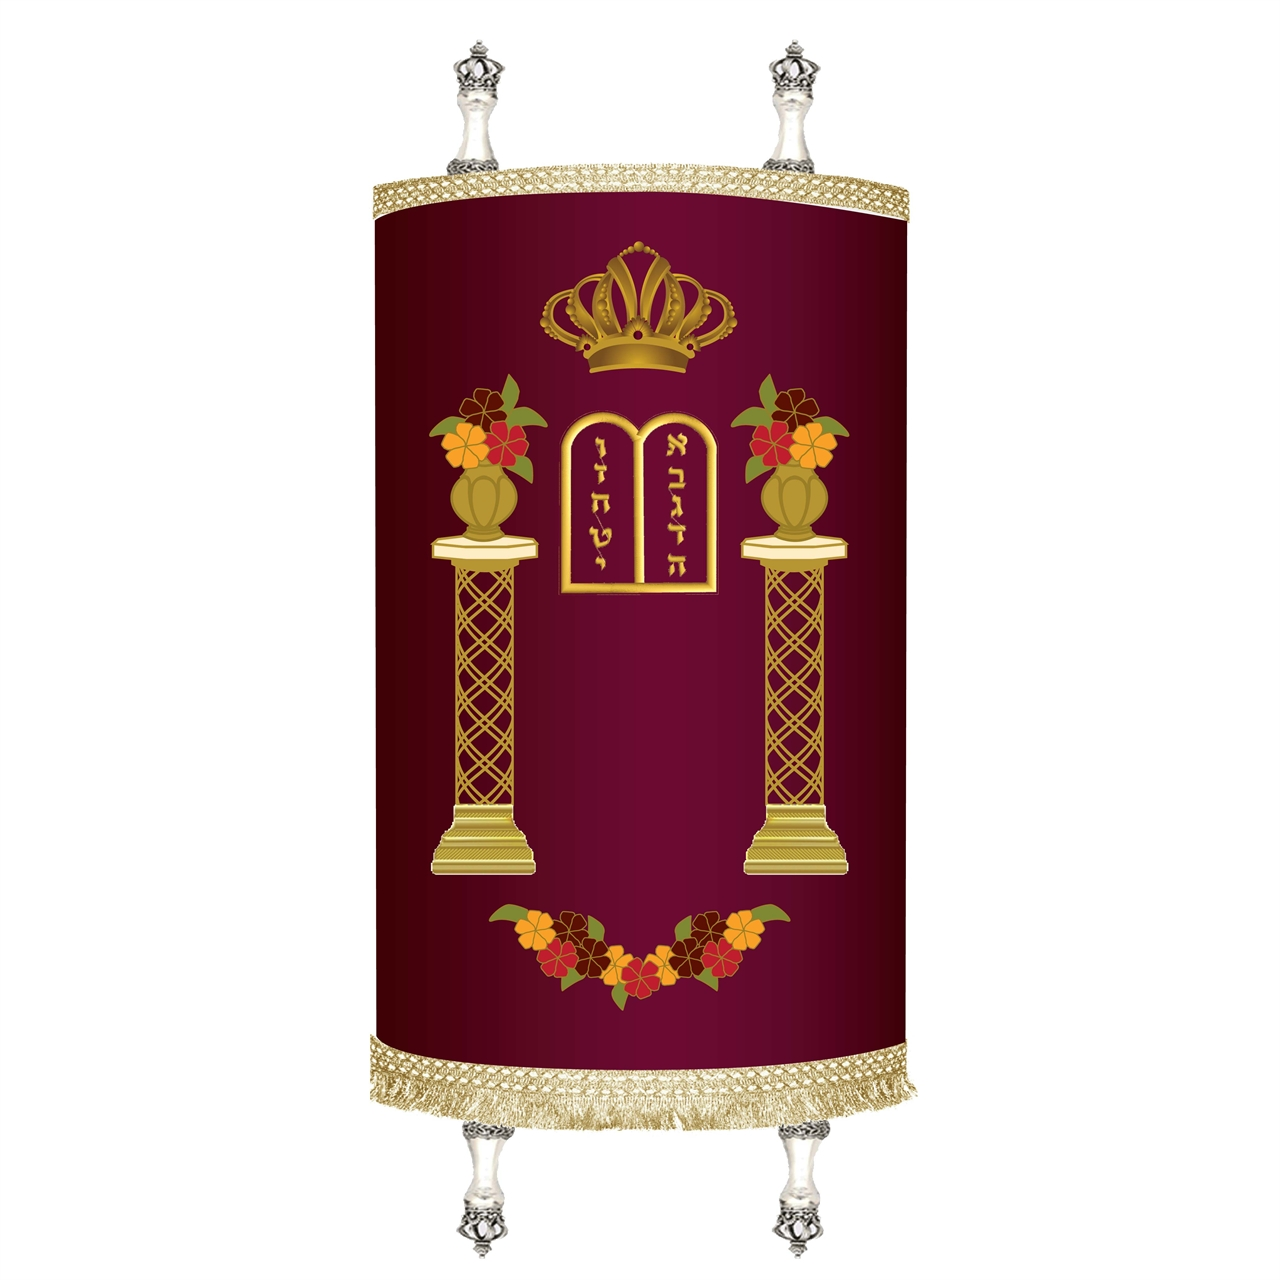 Torah Cover - Flower Pillars